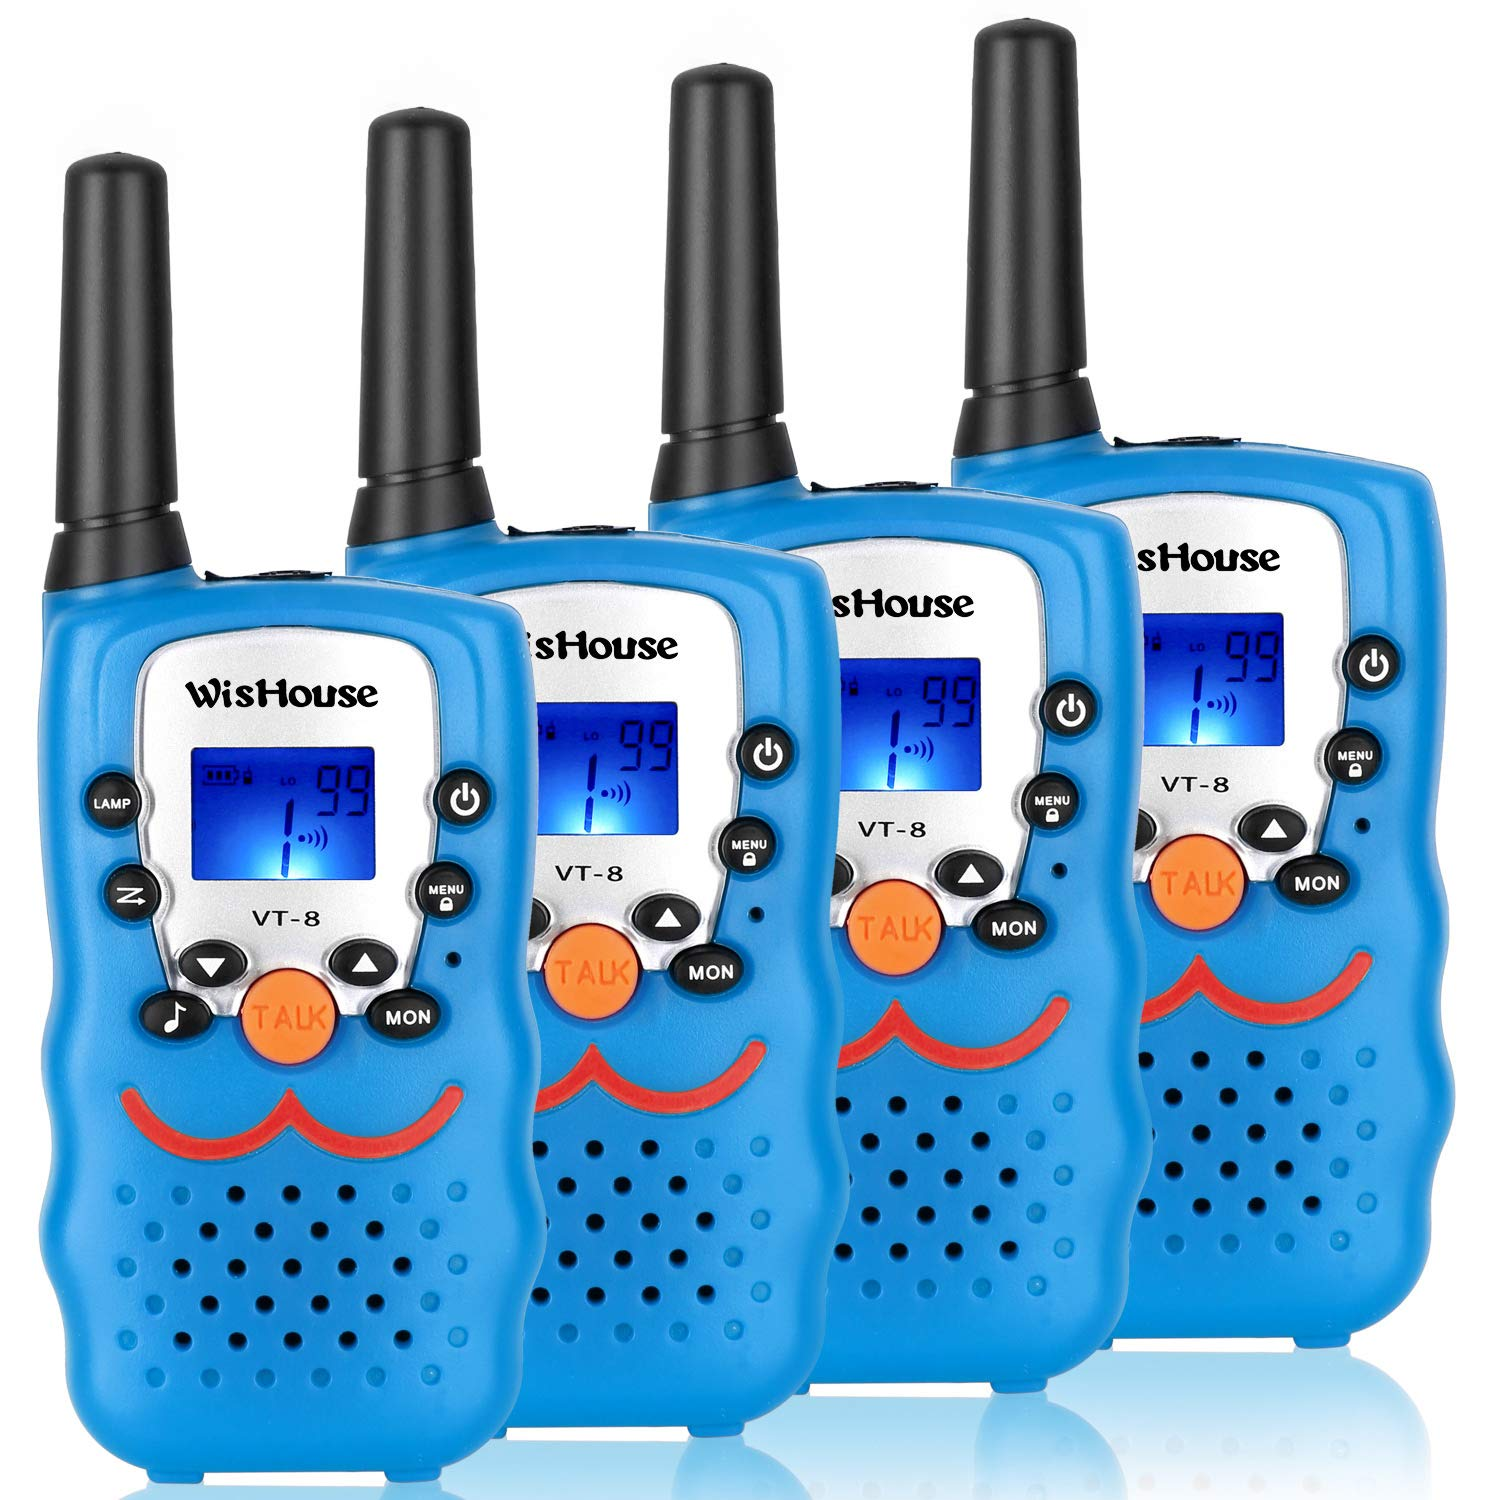 Walkie Talkie 4 Pack,Voice Activation Walkie Talkies for Boys, Best Toys Walky Talky 3 Miles Long range 22 Channels Handheld FRS GMRS Two Way Radios Hunting Hiking Camping (VT-8 Blue) by Wishouse (Image #1)